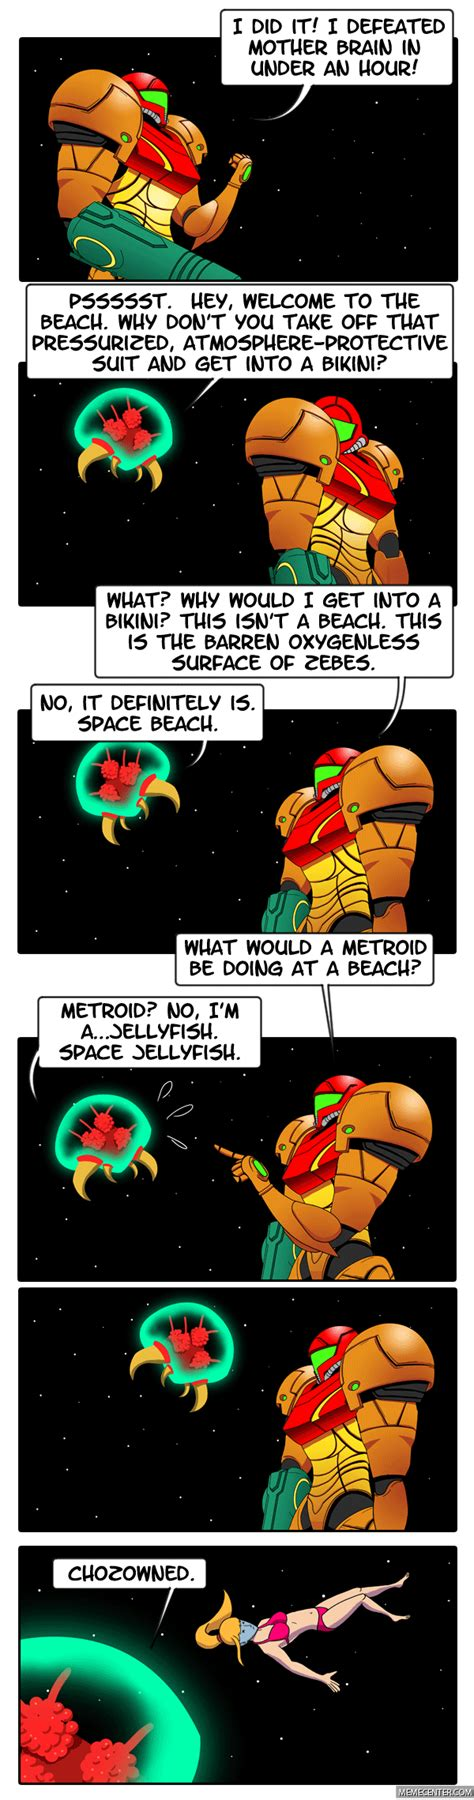 Samus Meme - scumbag metroid by chewyhouse meme center